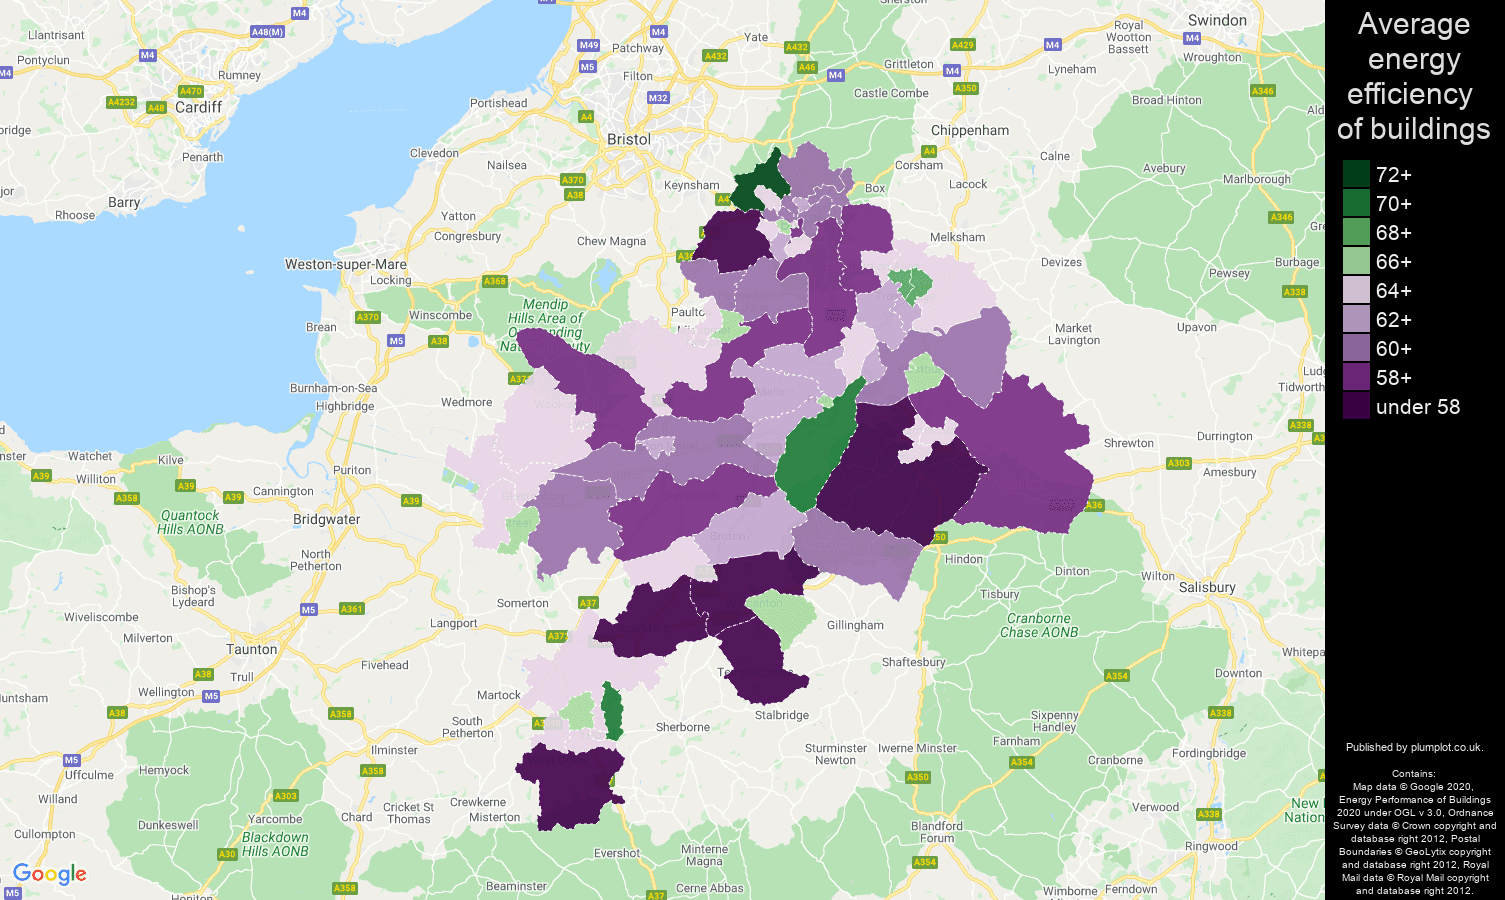 Bath map of energy efficiency of properties